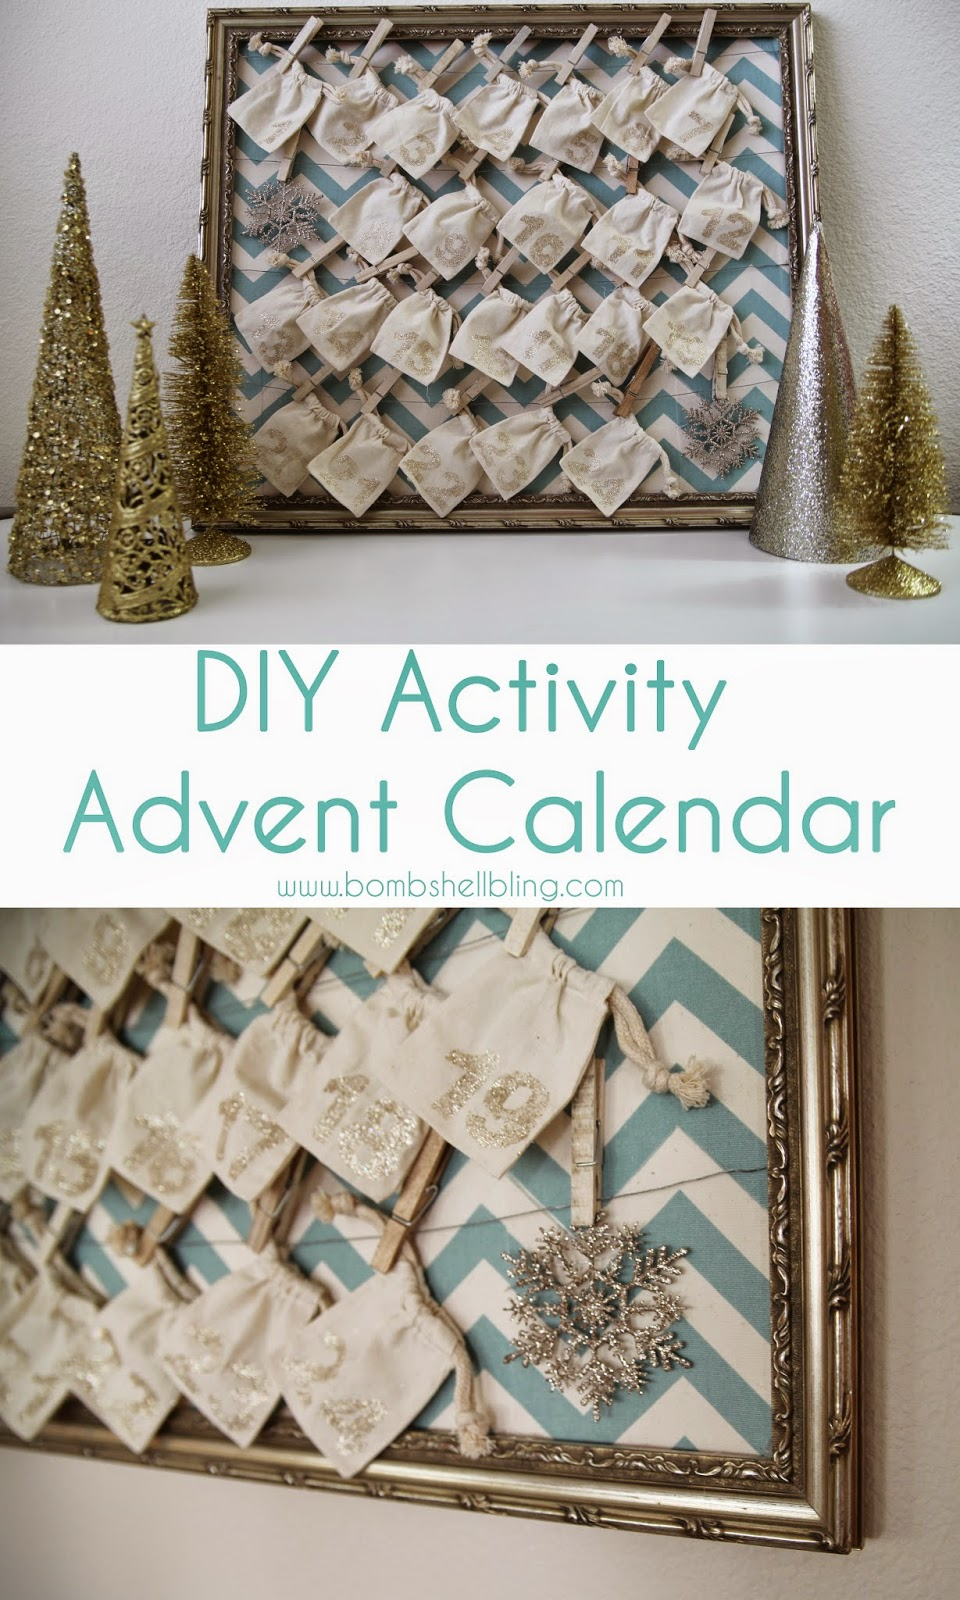 Calendar Advent Diy : Diy activity advent calendar